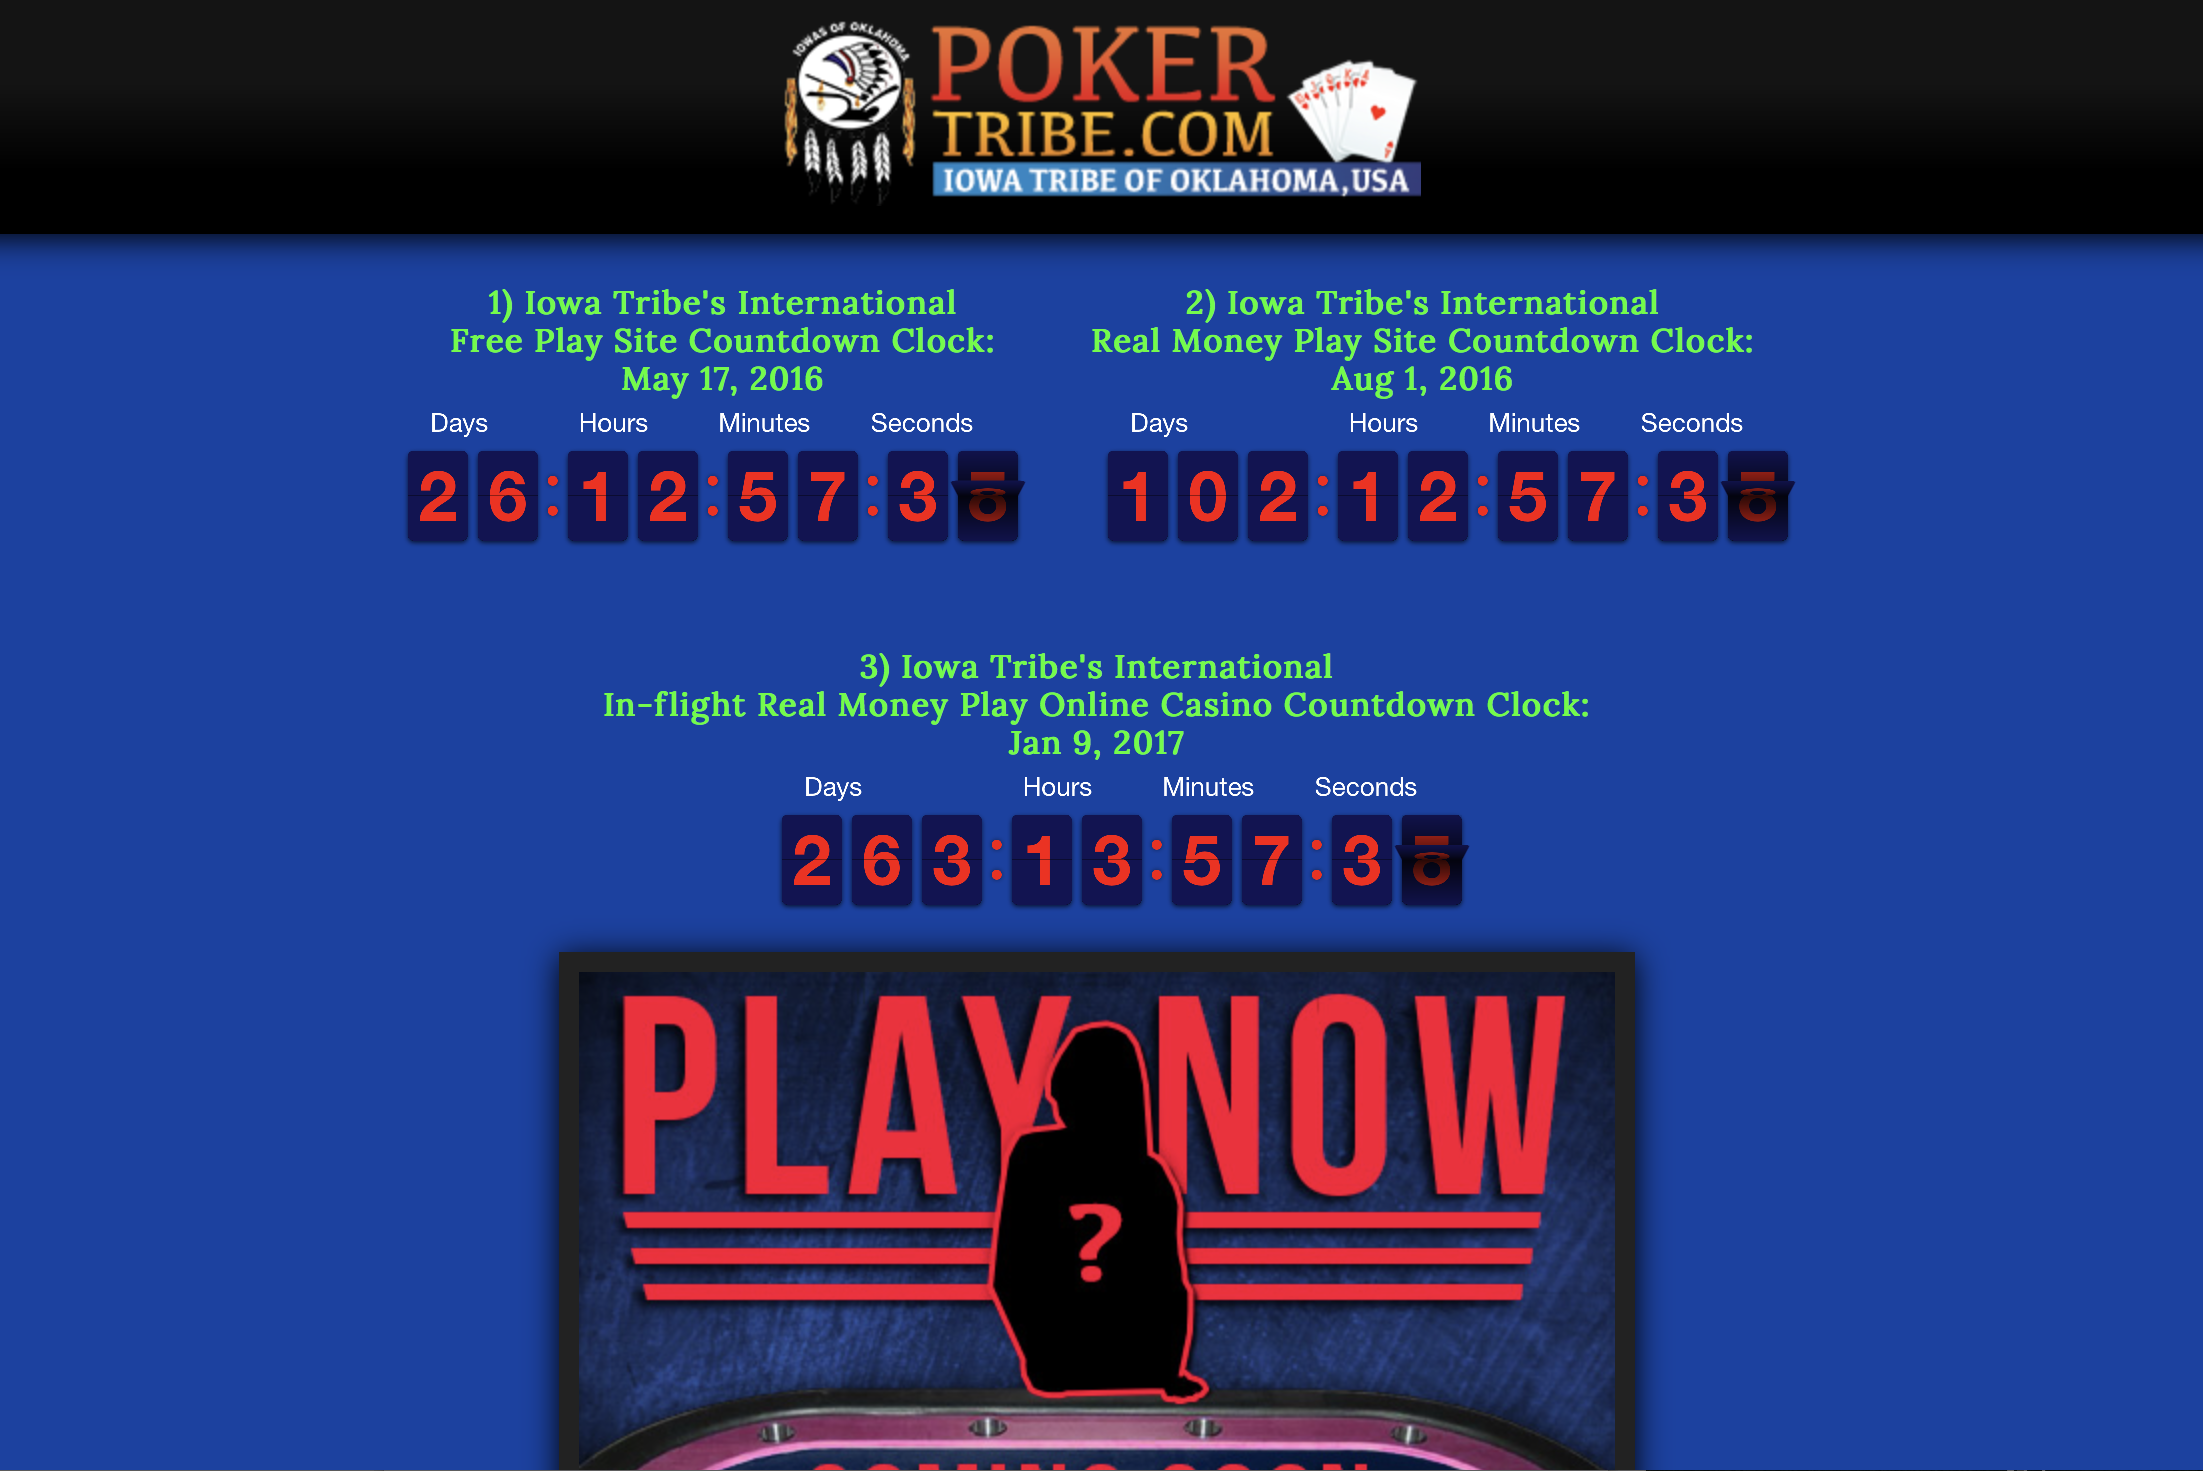 Iowa Tribe aims to be first in Indian Country with poker website